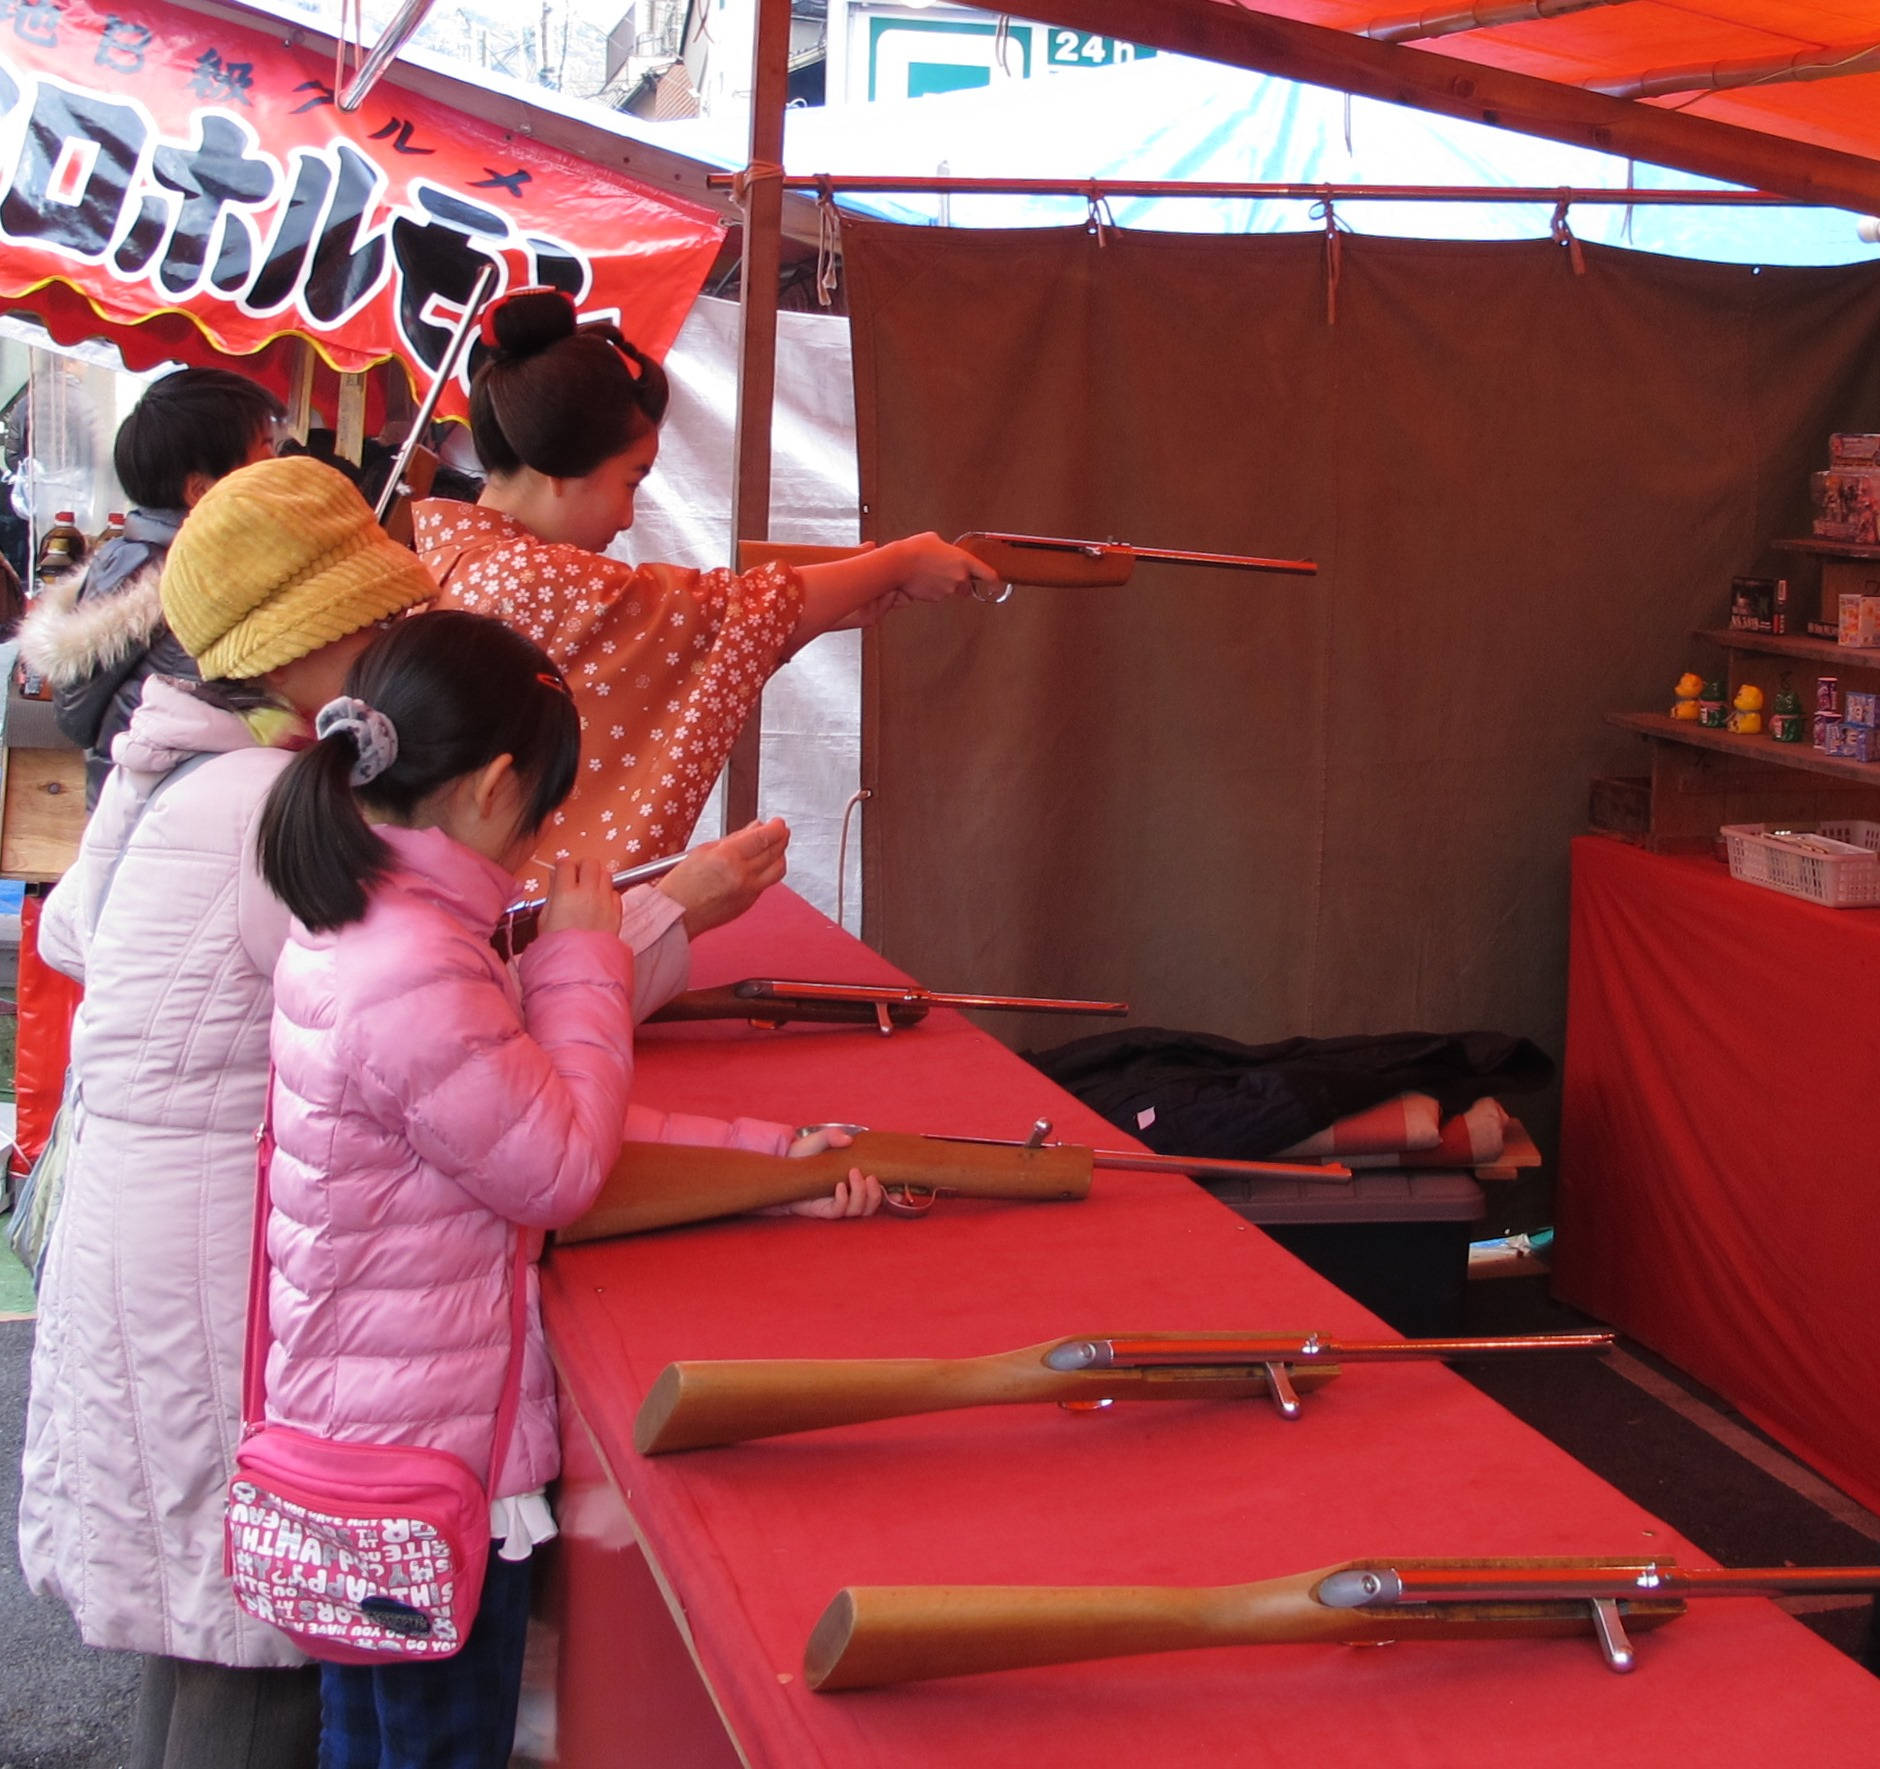 A shooting range among the stalls. Can you see the maiko?